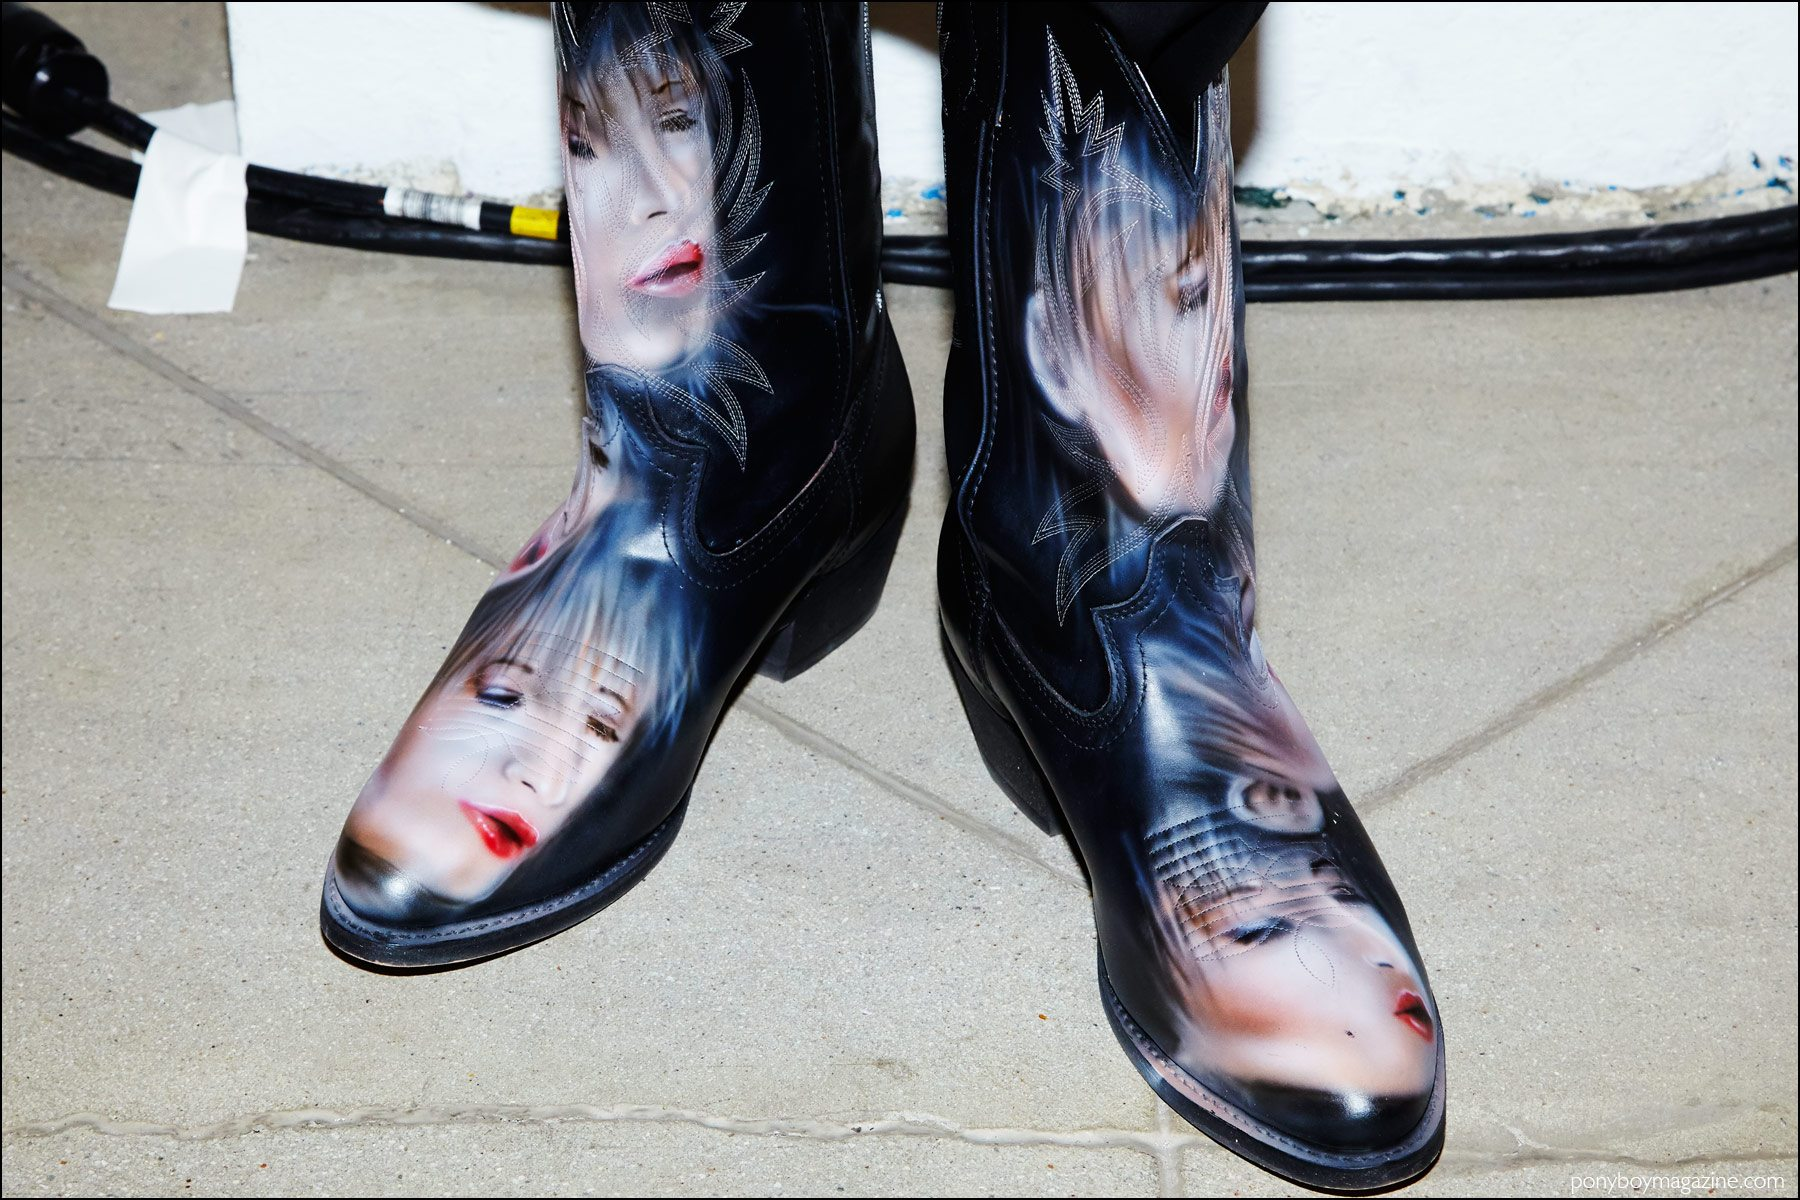 Airbrushed cowboy boots photographed backstage at Devon Halfnight Leflufy S/S17 presentation shown during New York Fashion Week Men. Photography by Alexander Thompson for Ponyboy magazine NY.